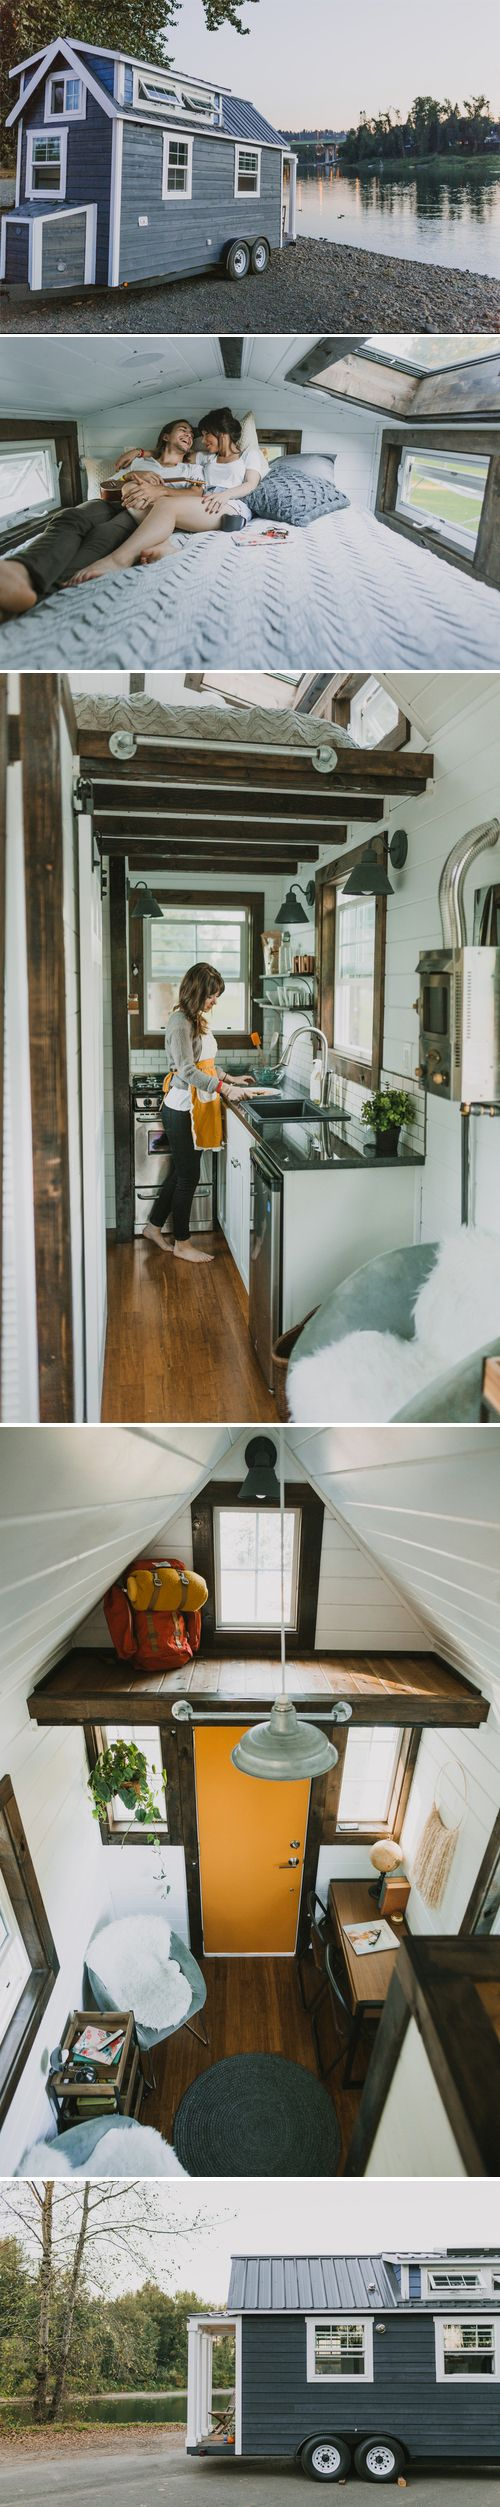 Tiny house built by Heirloom Custom Tiny Homes in Oregon. This would make an awesome coffee stand actually